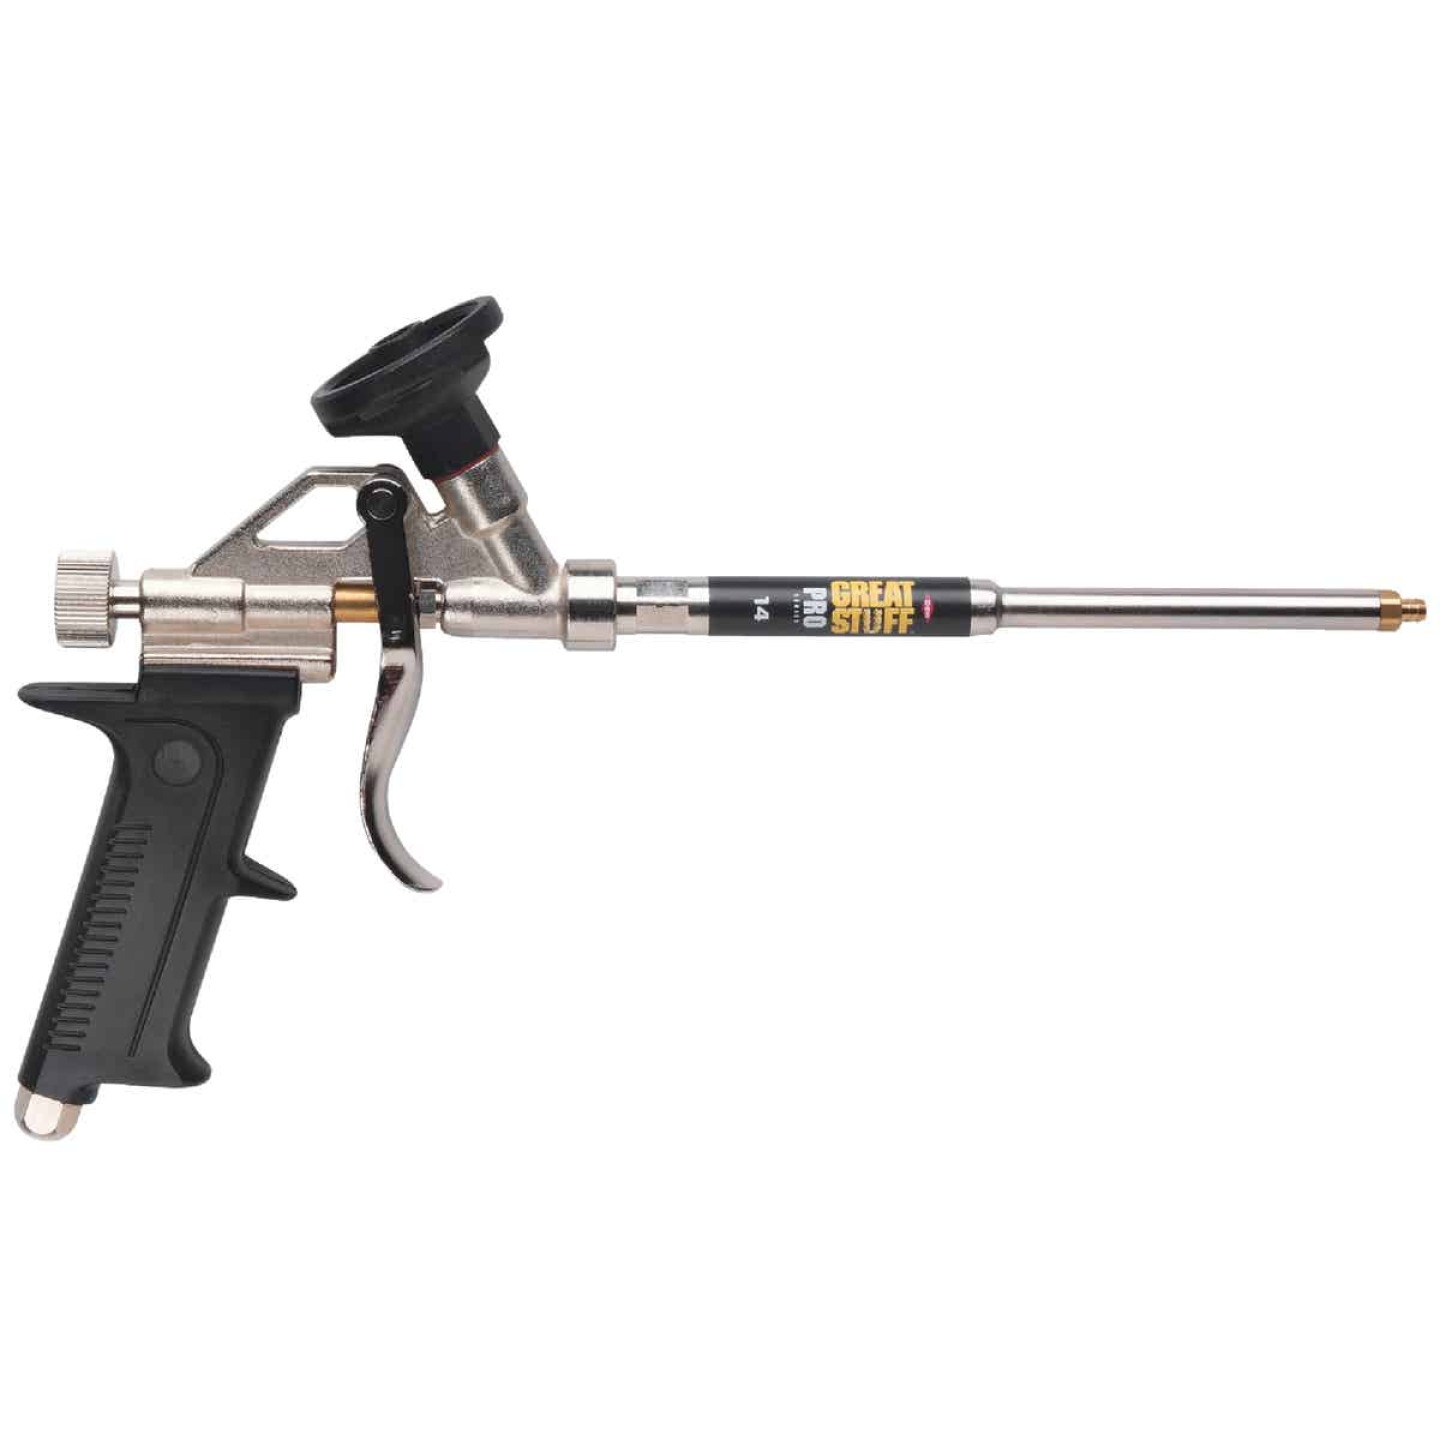 GREAT STUFF PRO 14 Foam Dispensing Gun Image 1